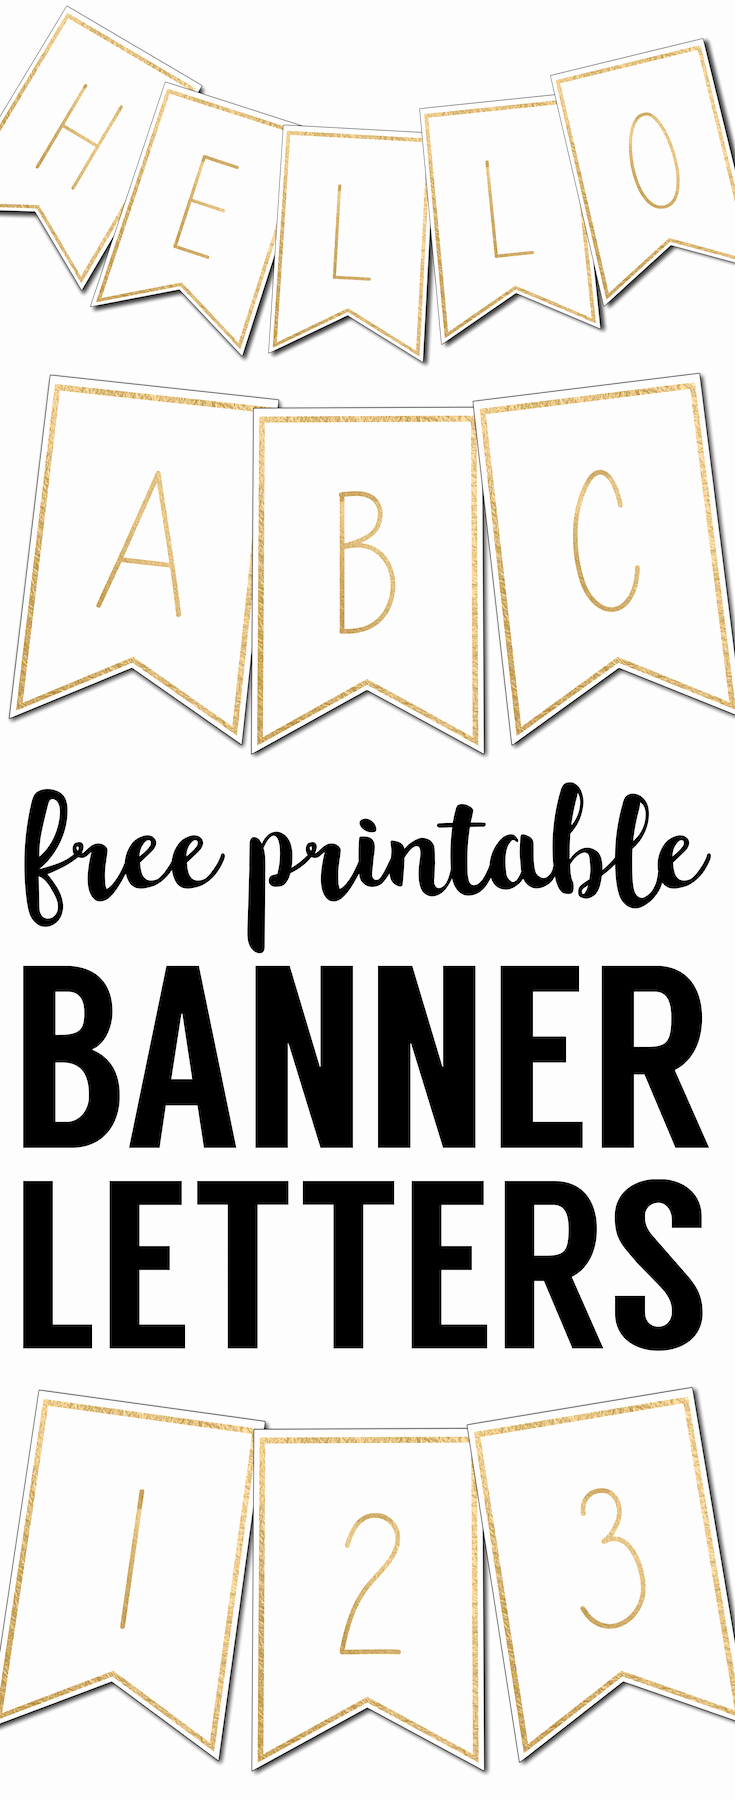 Free Printable Banner Letters Lovely Free Printable Banner Letters Templates Paper Trail Design